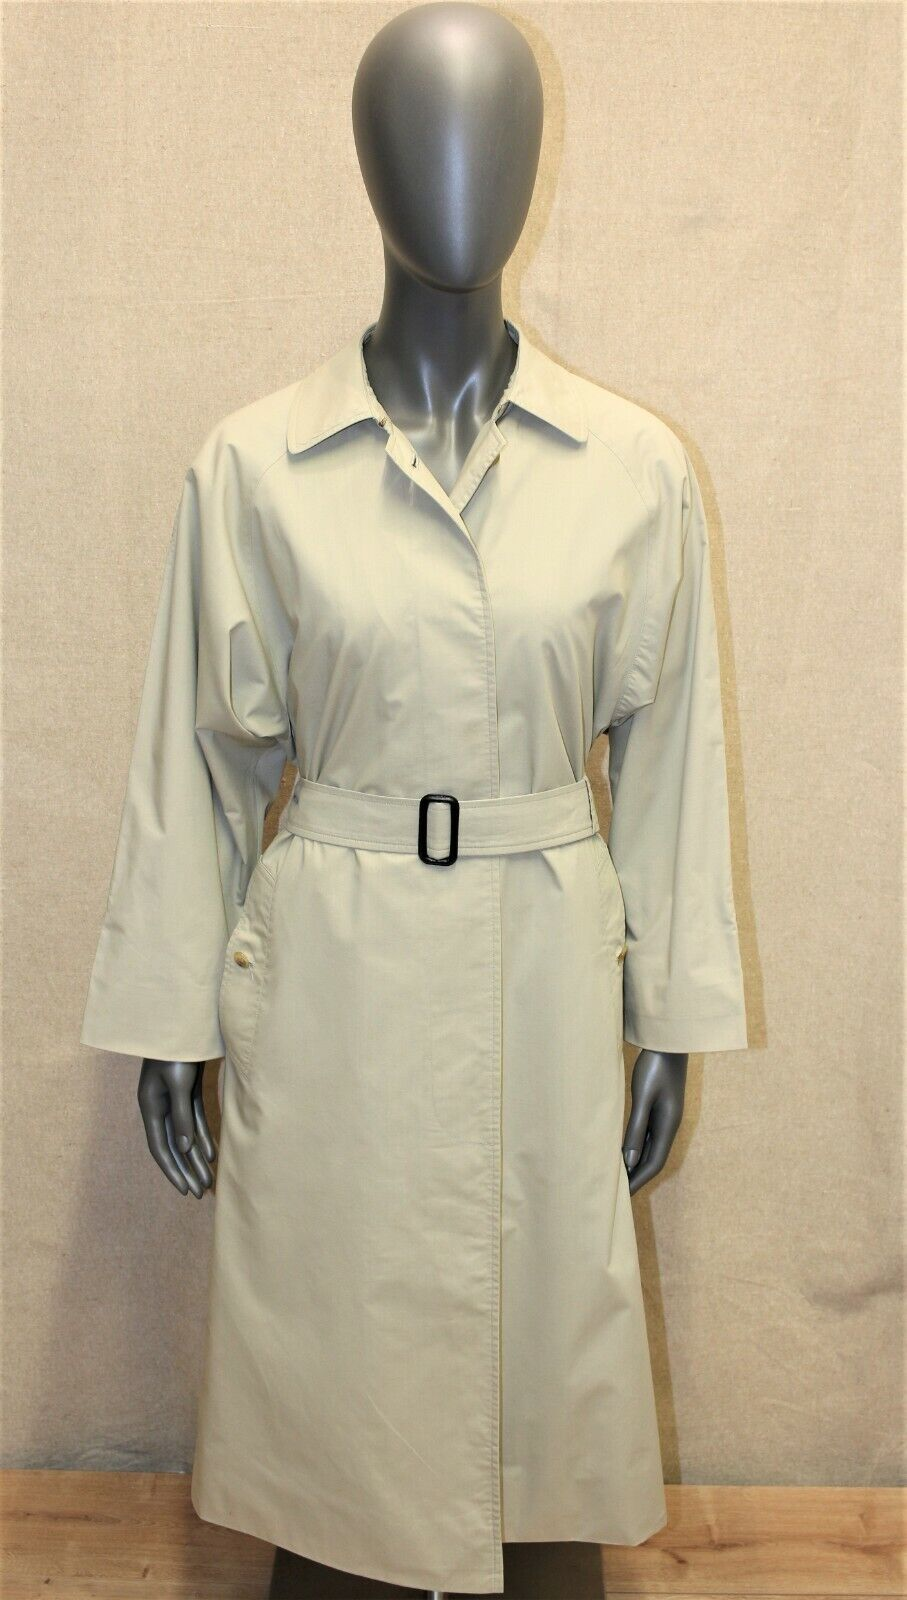 Trench imperméable femme burberry's vintage 80's beige 8 long made in england